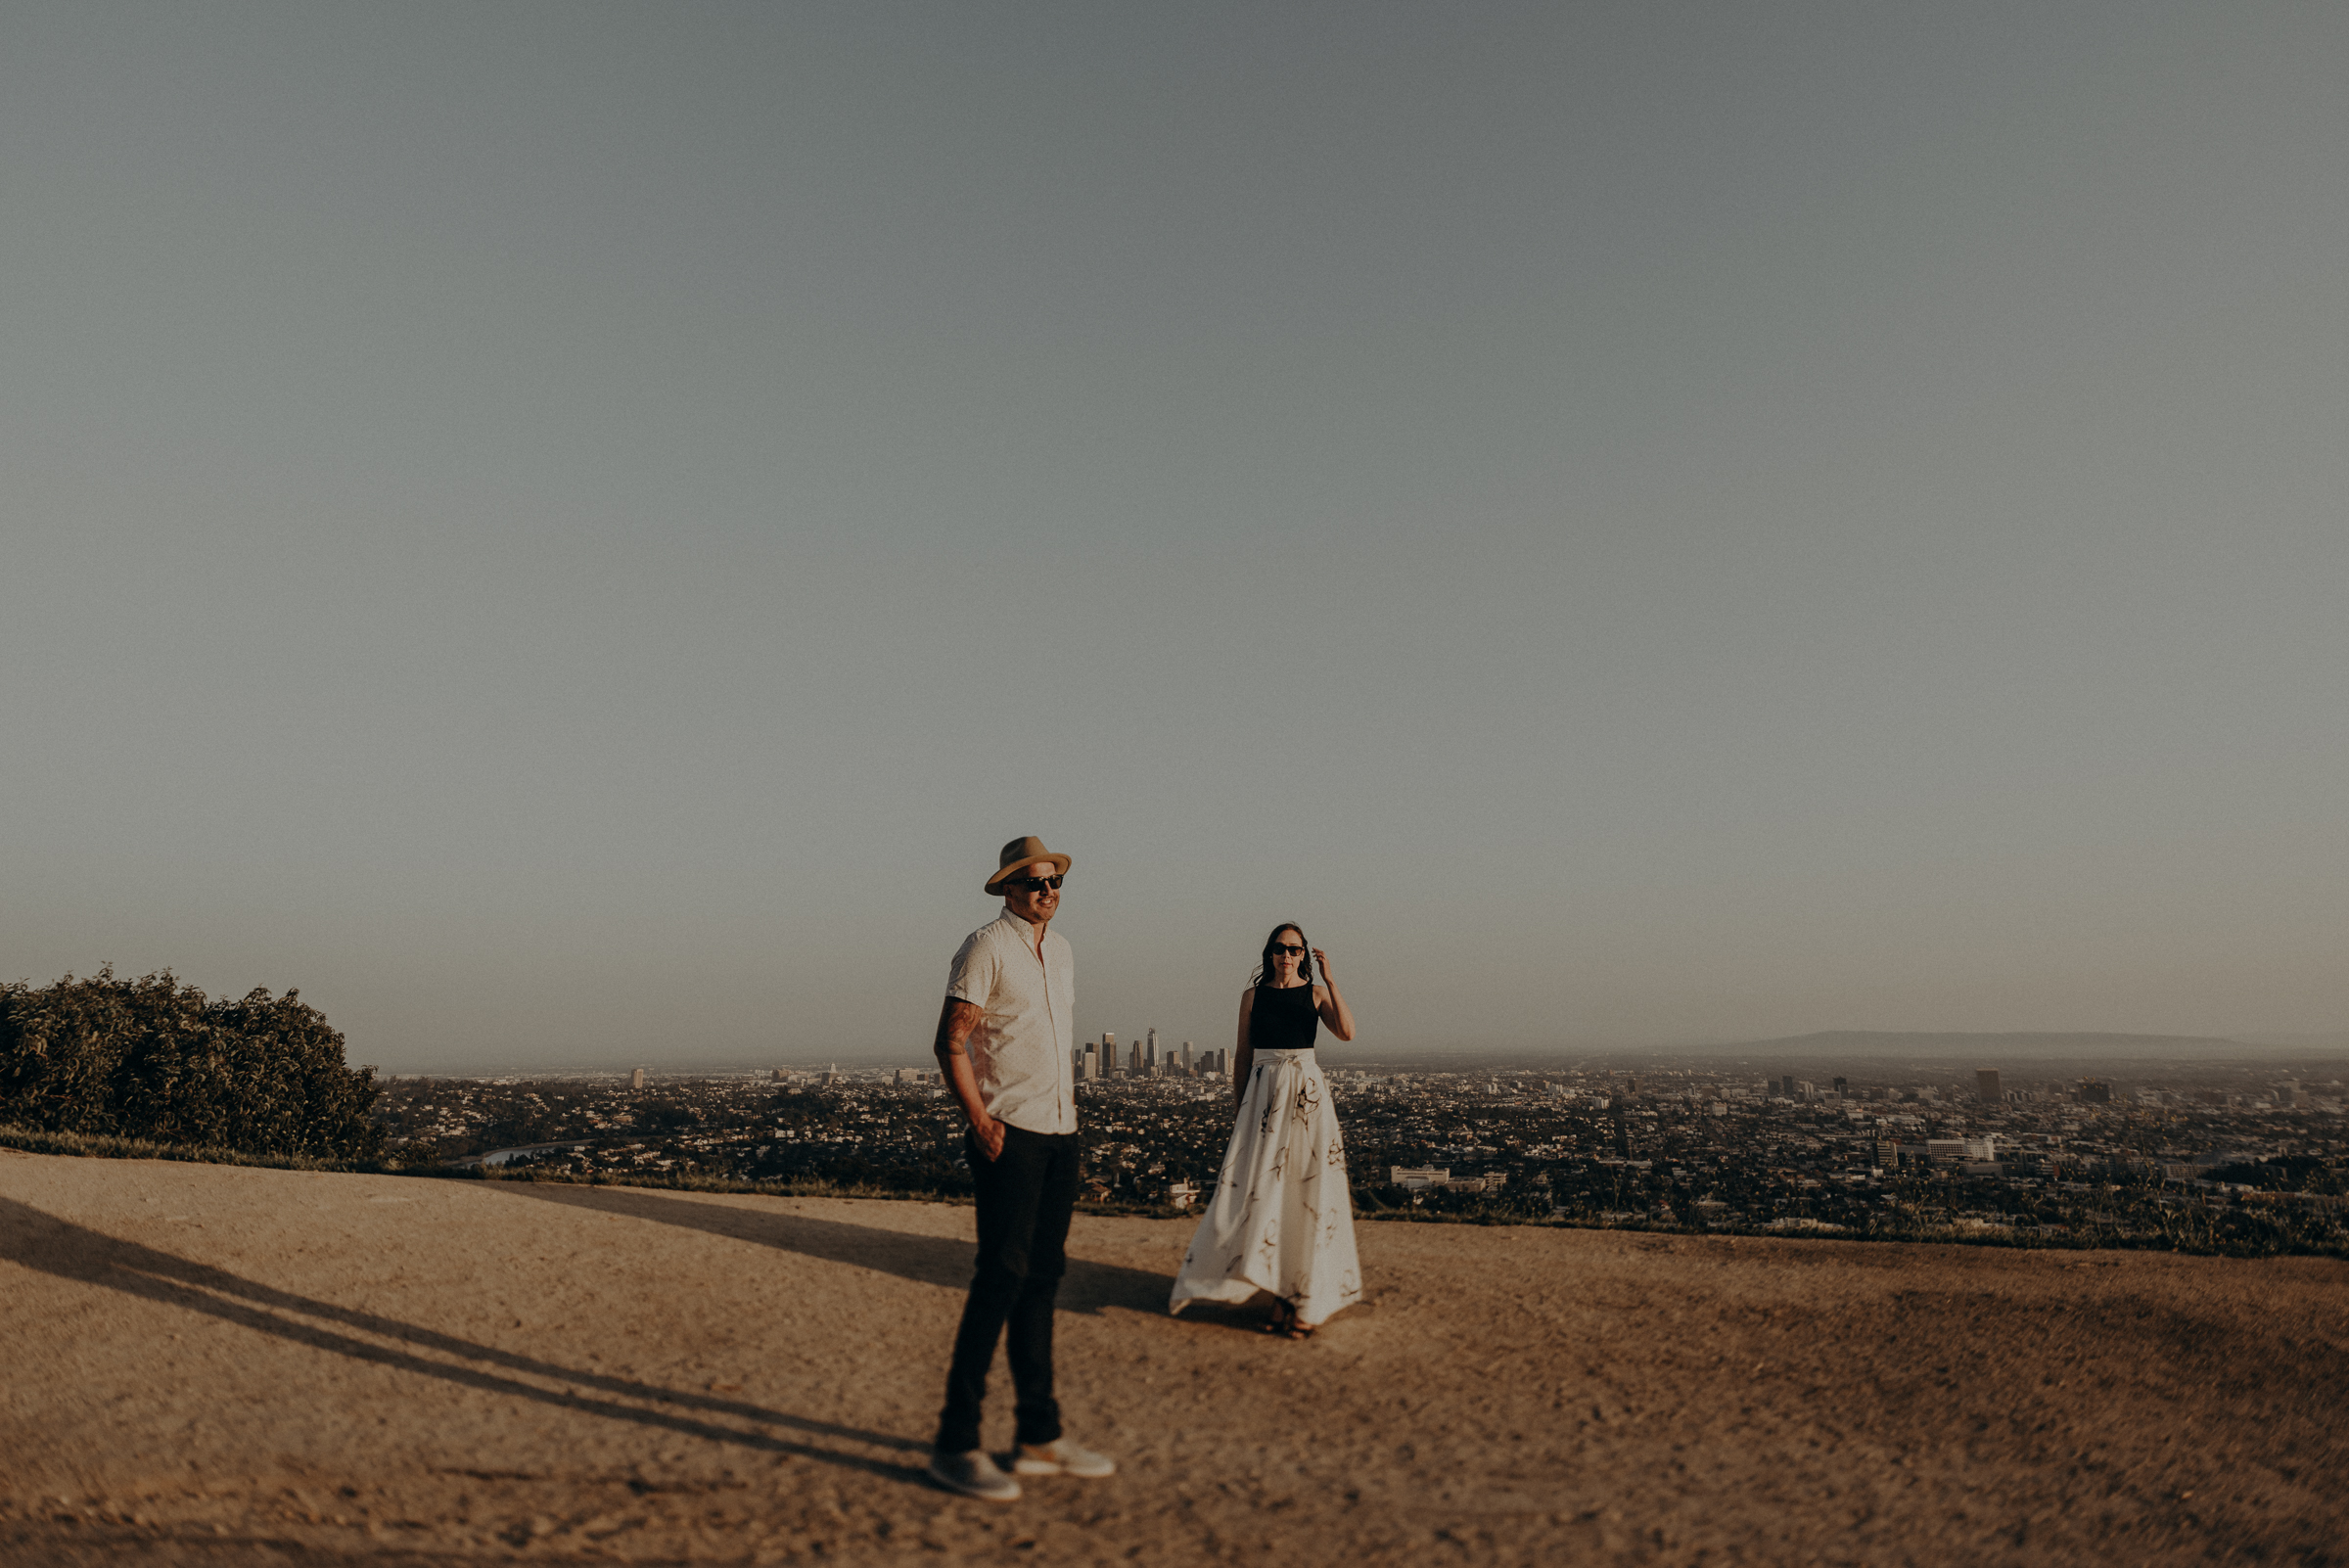 Los Angeles Wedding Photographers - Griffith Park Engagement - IsaiahAndTaylor.com